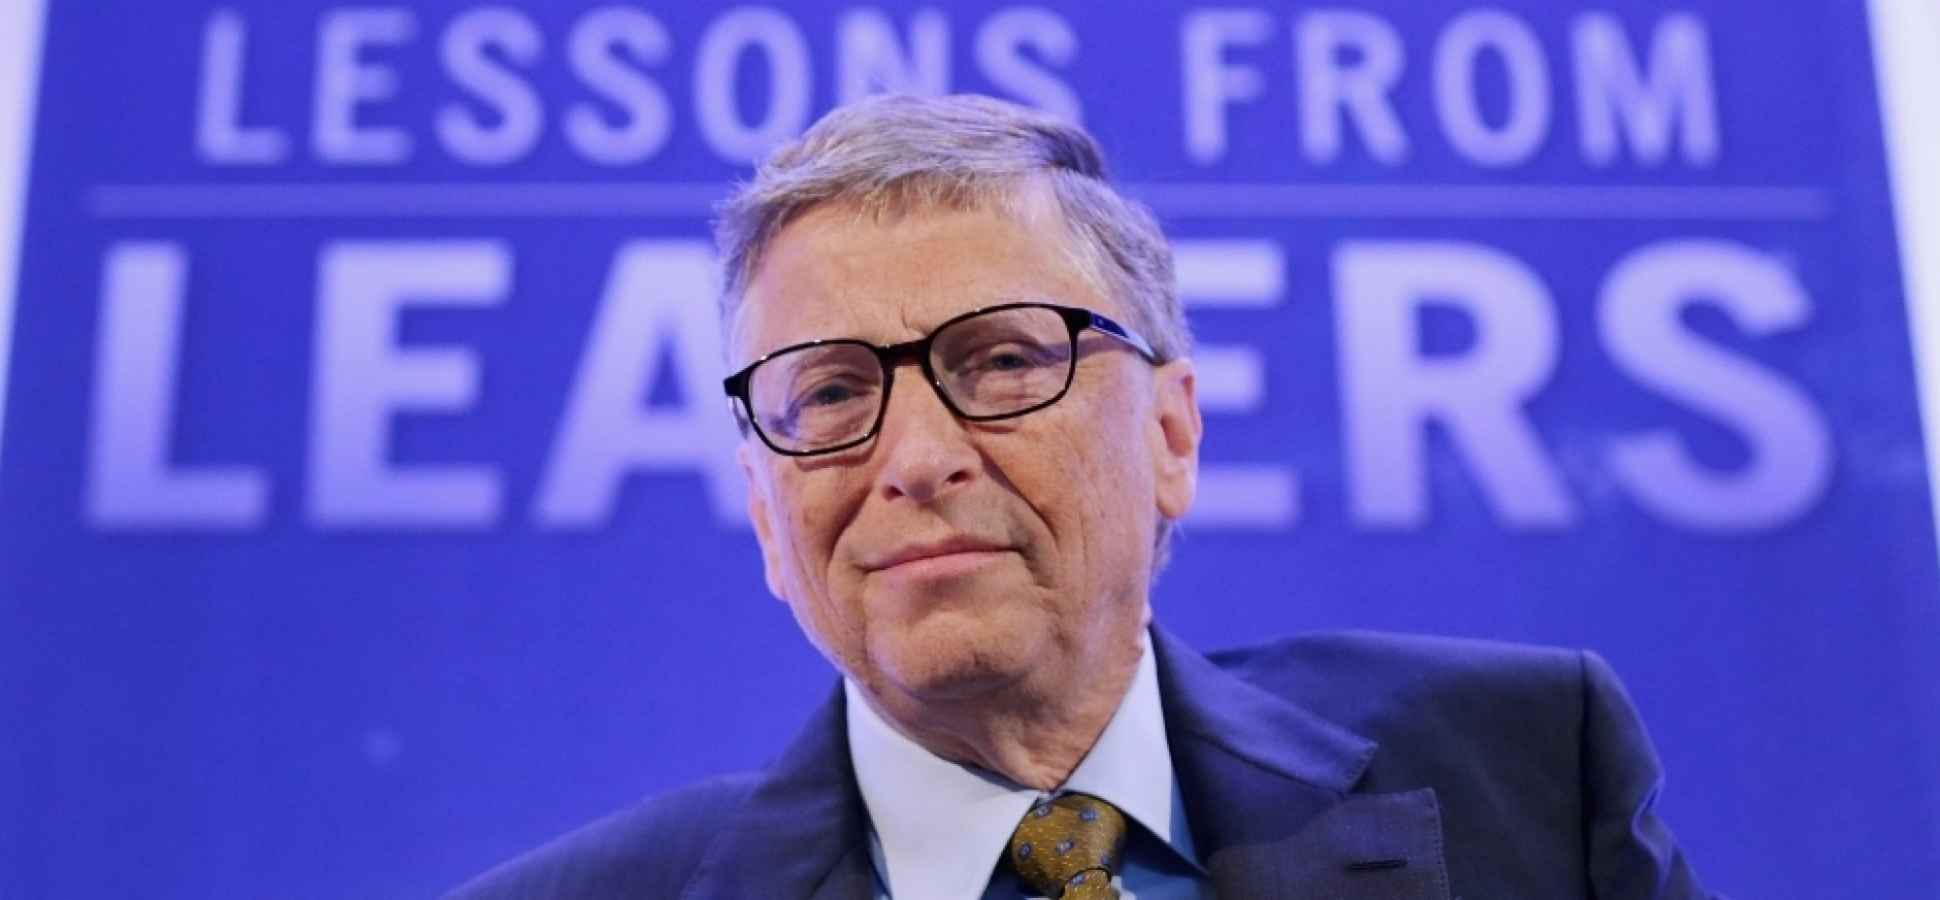 20 Brilliant Quotes from Billionaire Entrepreneurs